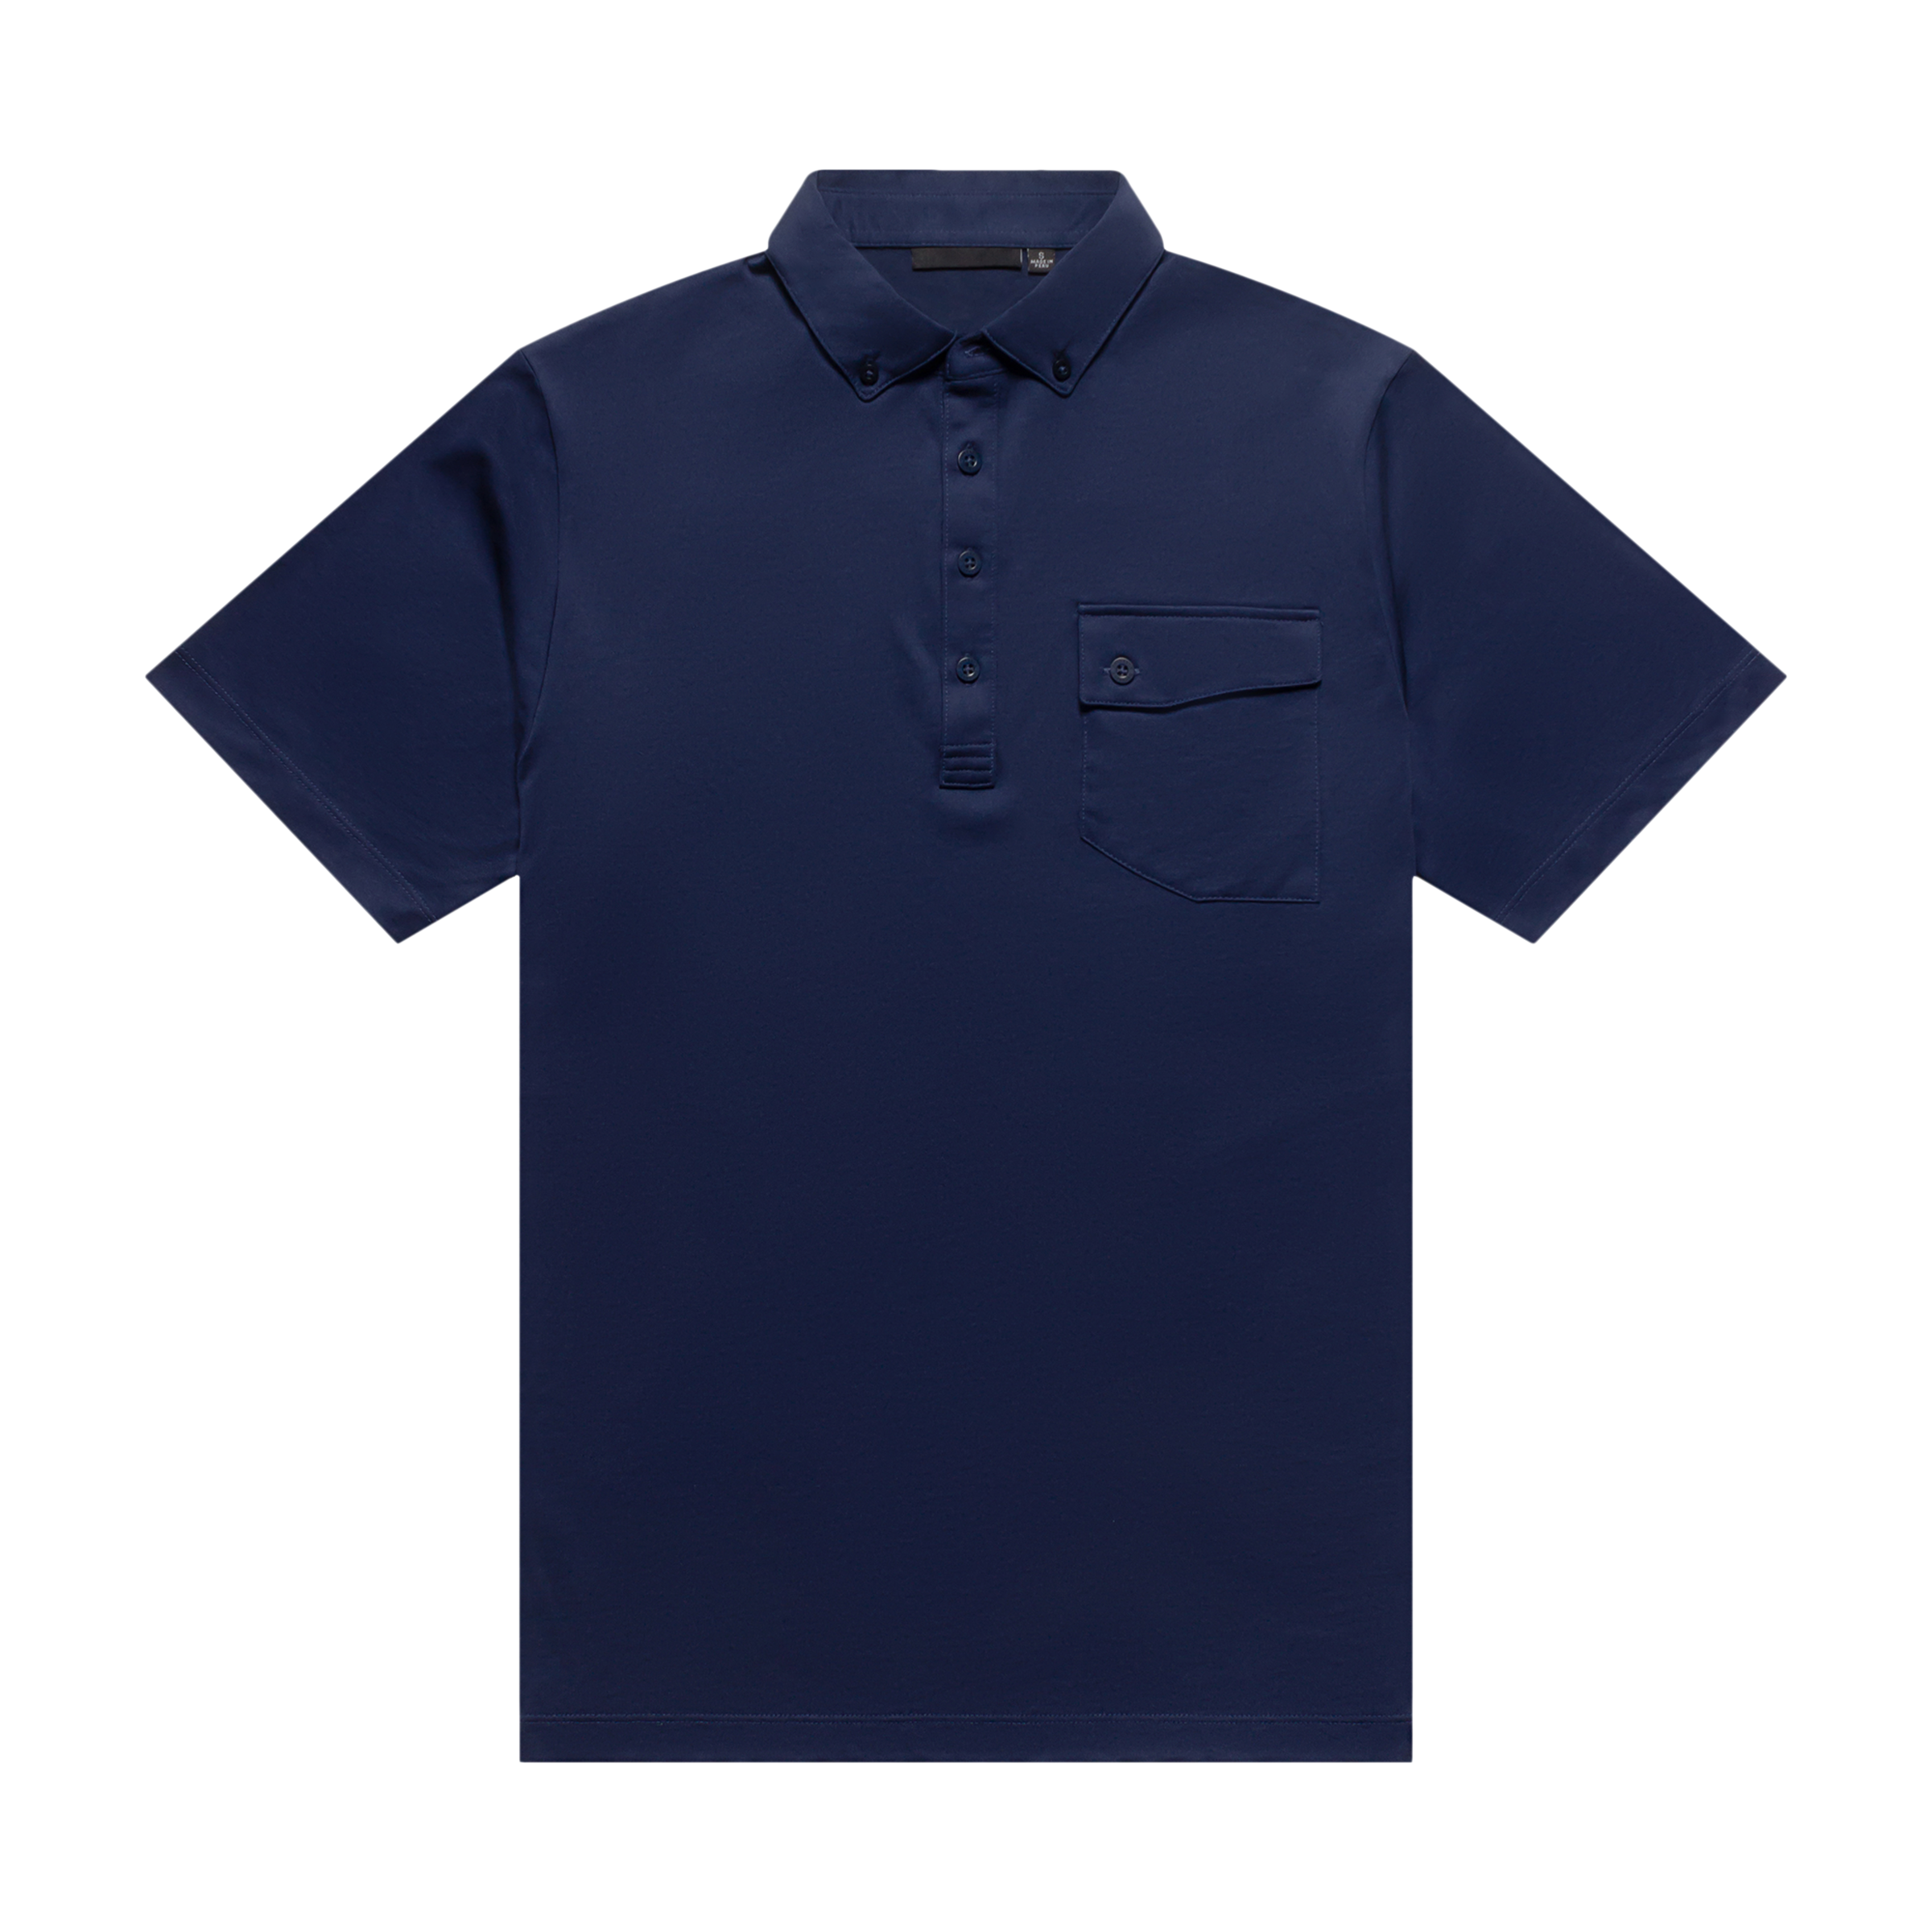 blue t-shirt product photography